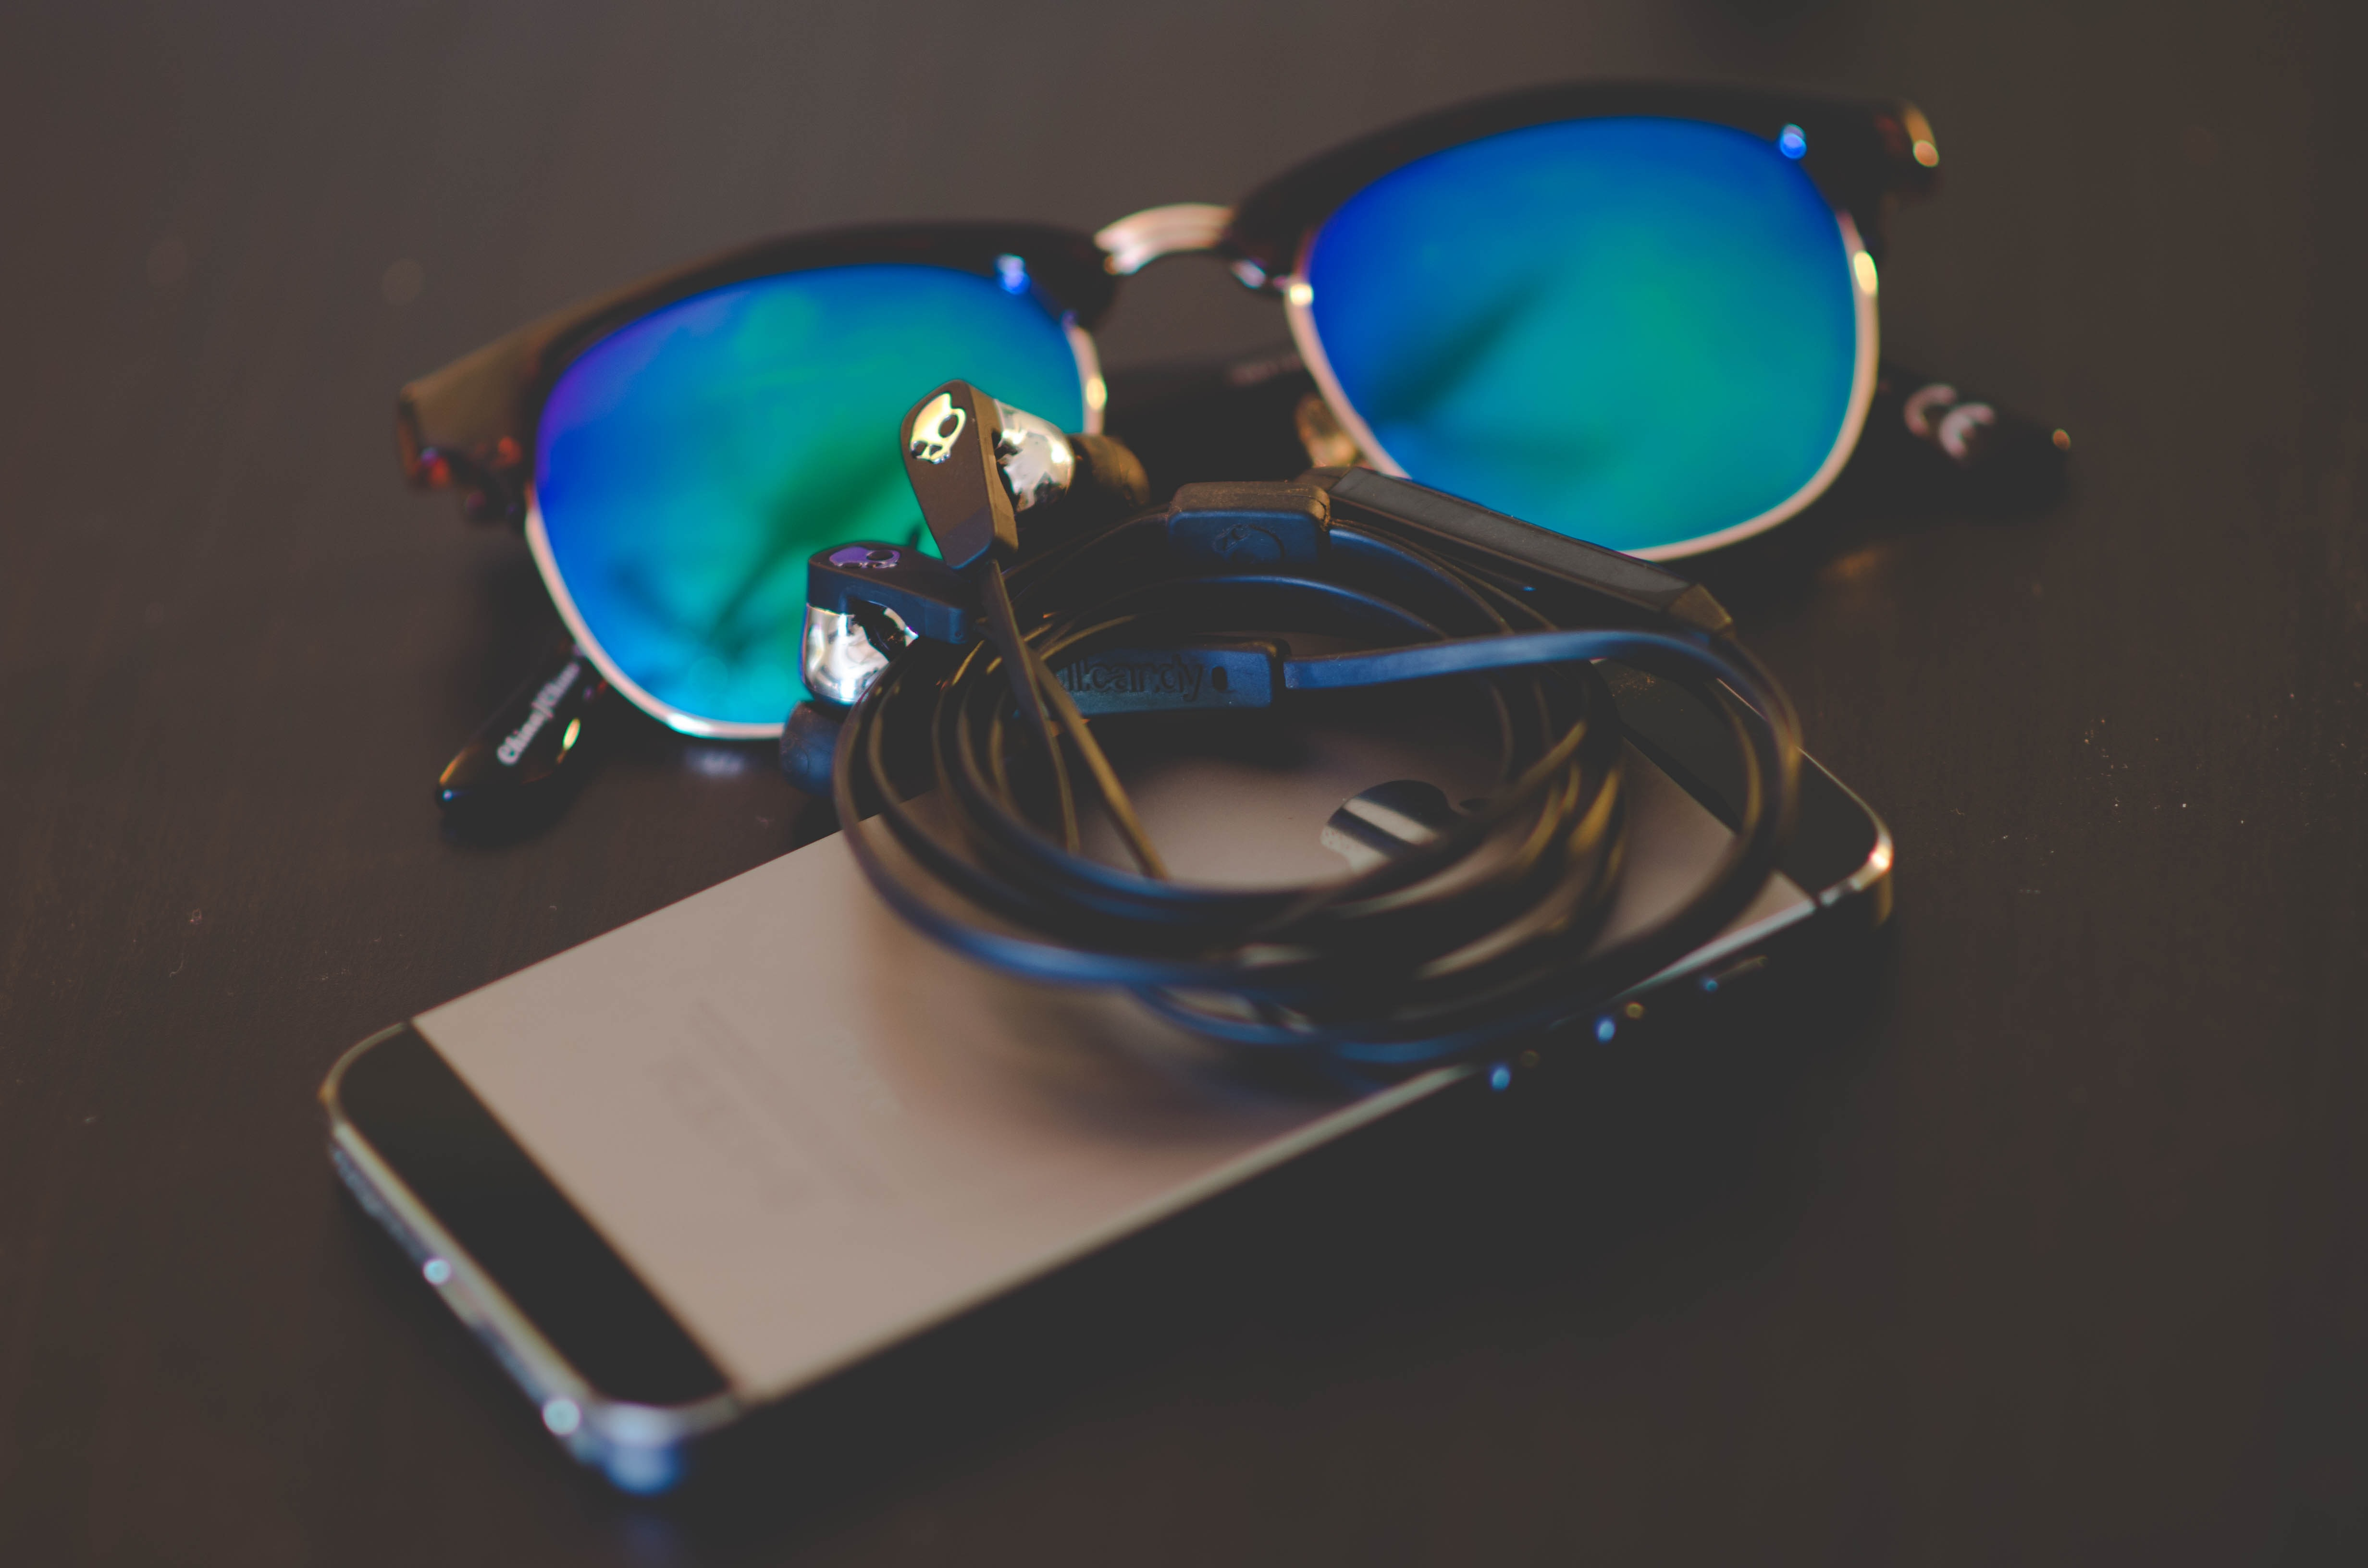 space gray iPhone beside Clubmaster-style sunglasses